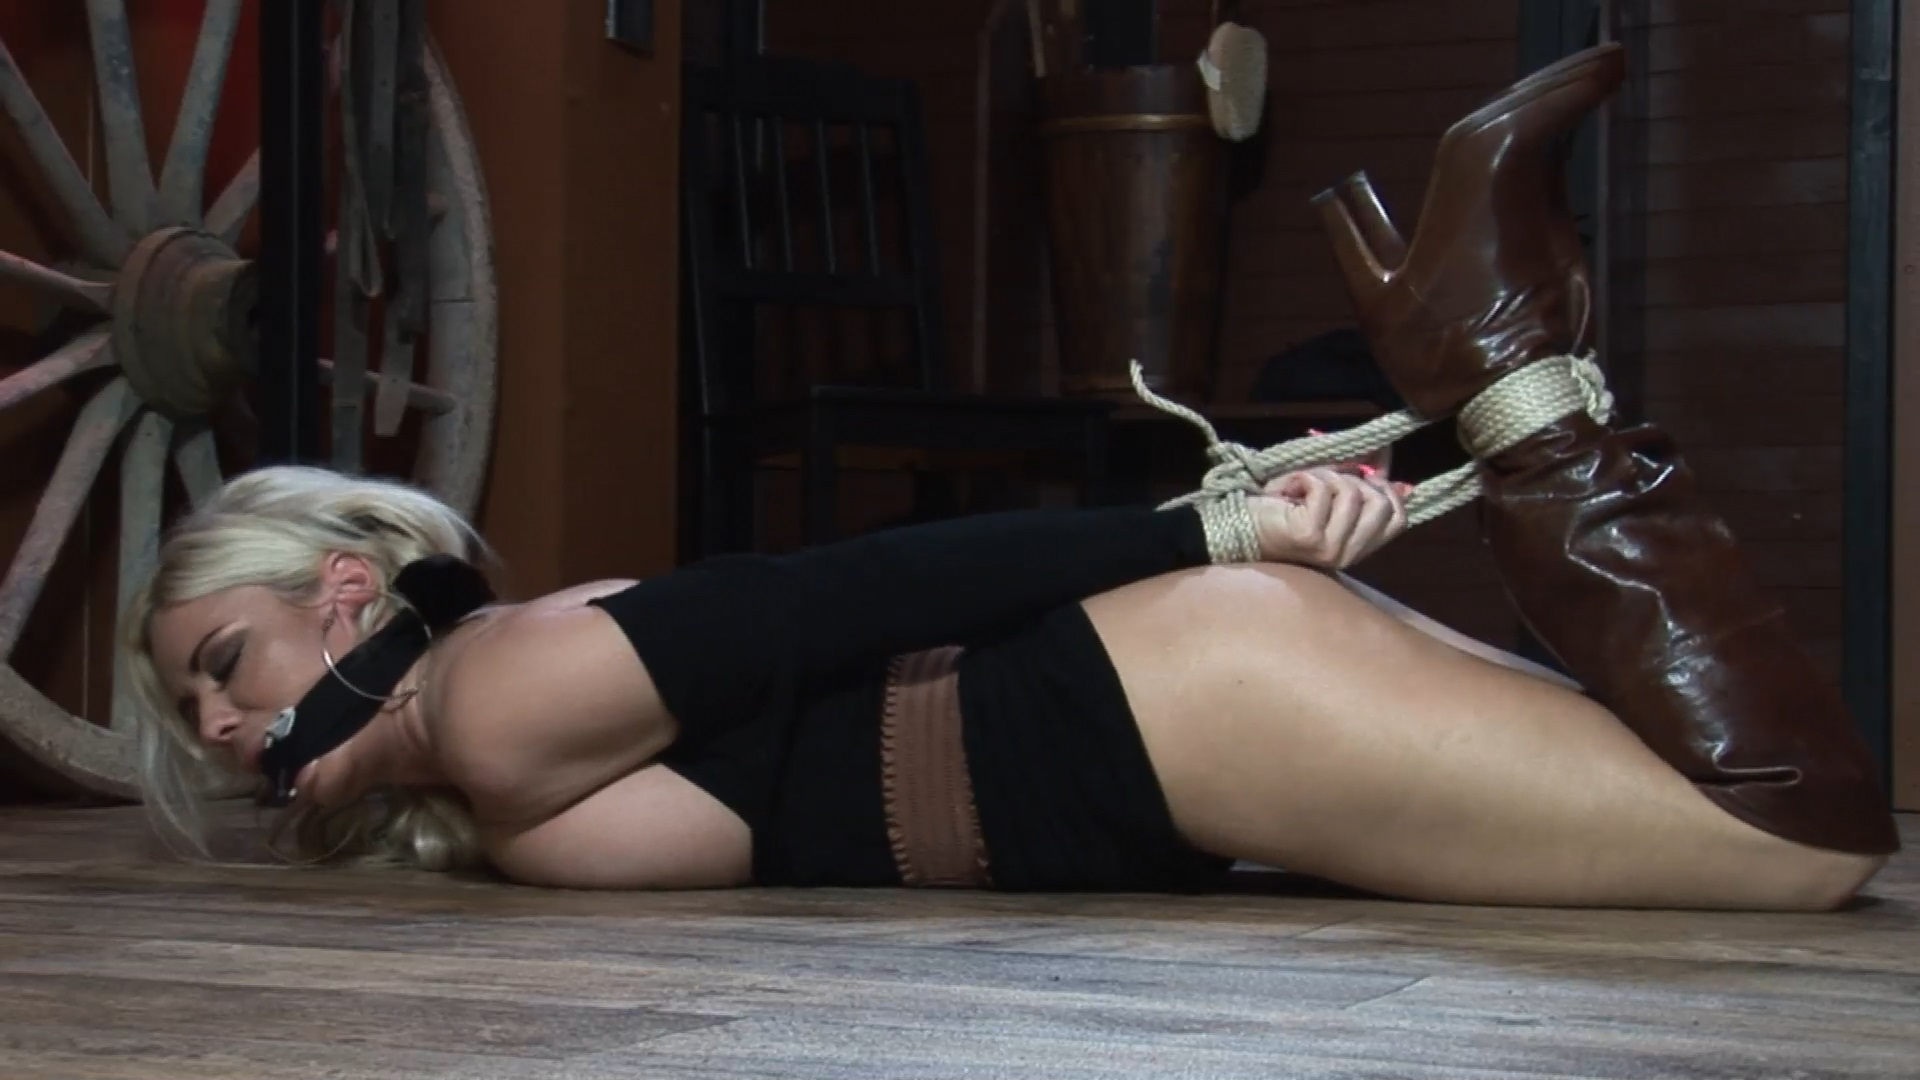 Hogtied and Humiliated!